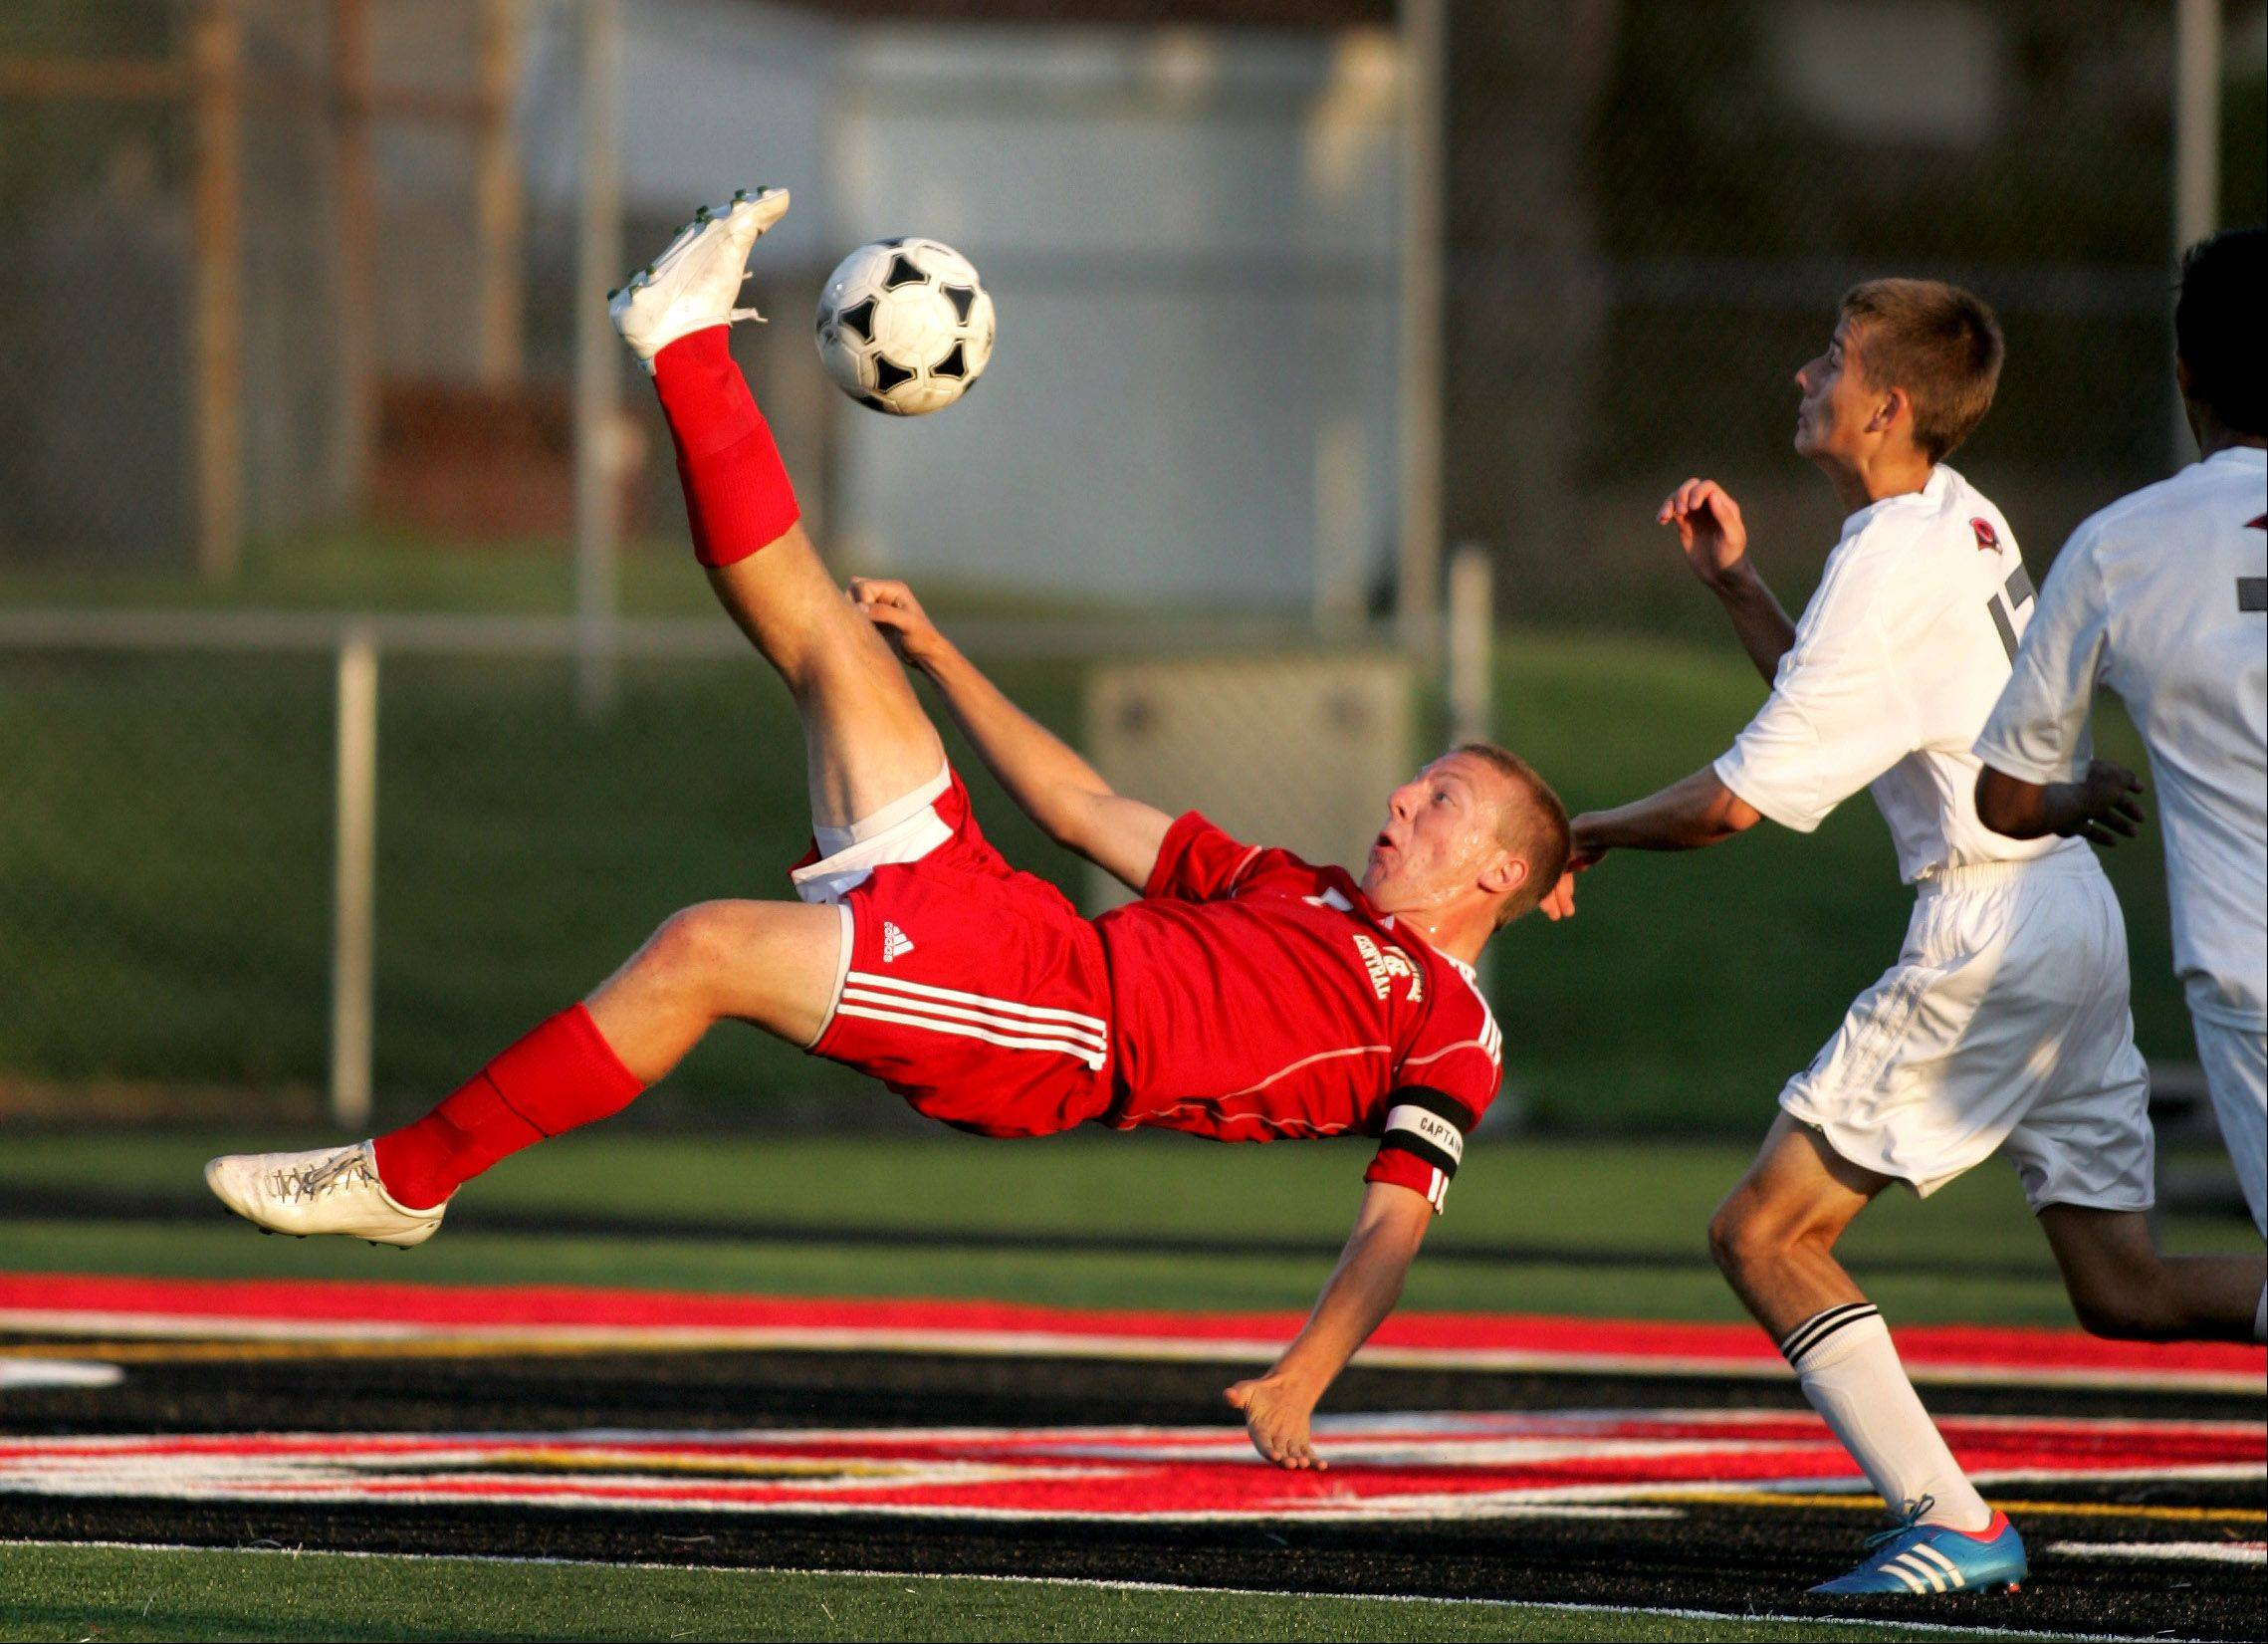 Naperville Central's Pat Flynn kicks toward the goal over Glenbard East's Ivailo Alexandrov during Tuesday's soccer game in Lombard.